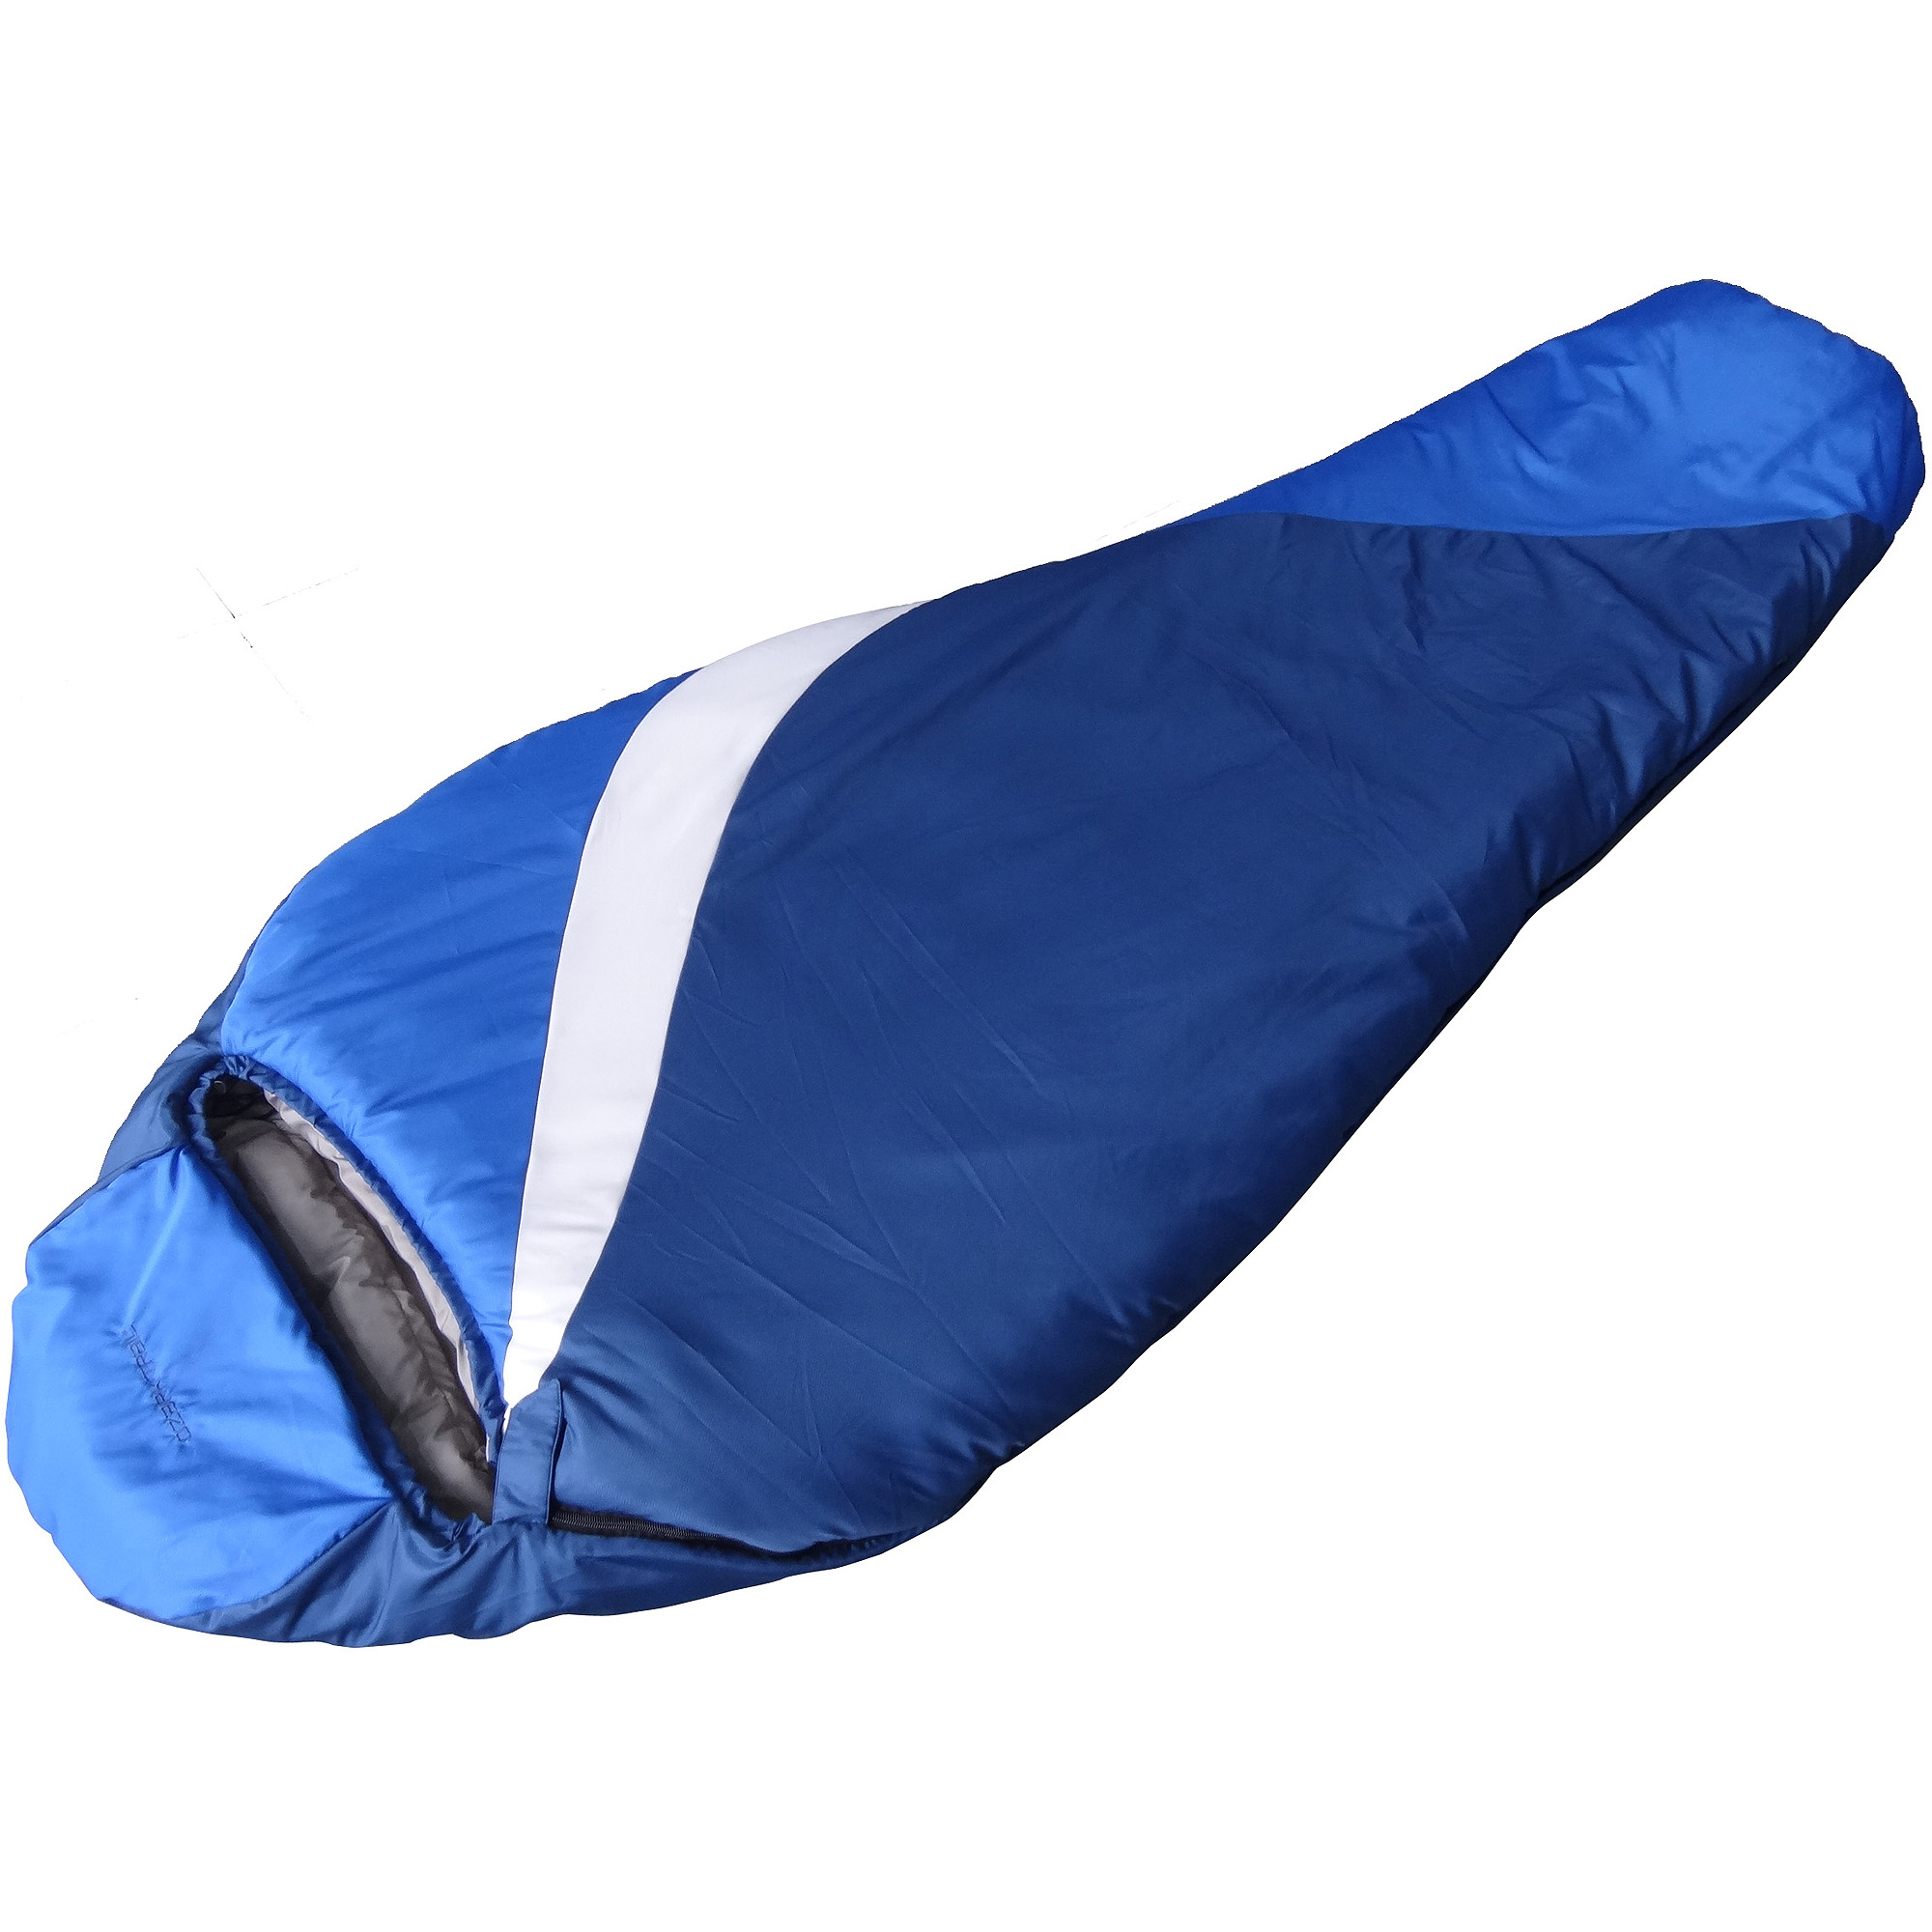 Ozark Trail 0-Degree Adult Mummy Climatech Fiber Sleeping Bag, Blue/White/Dark Blue